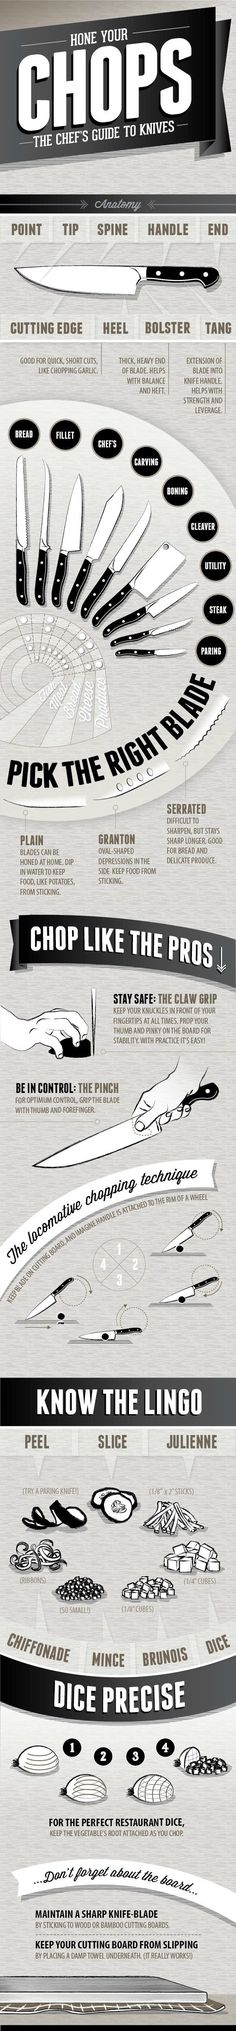 Guide to knives